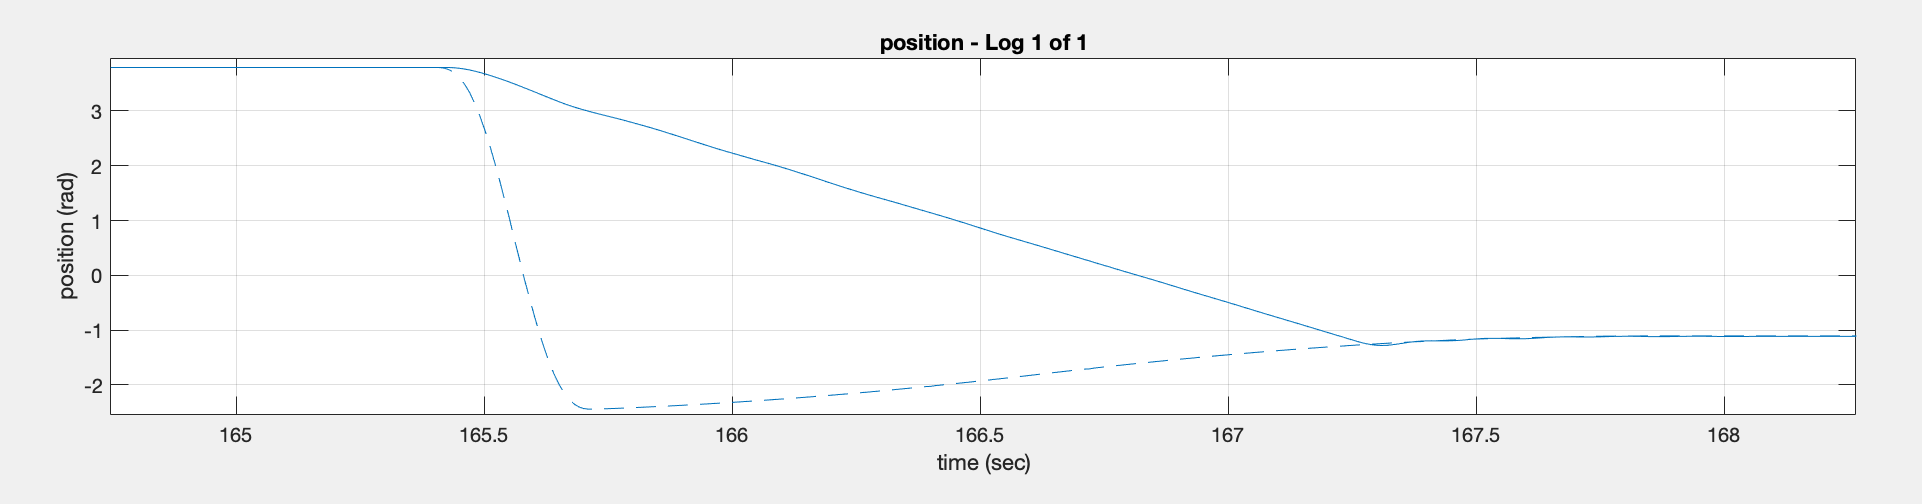 position_plot2.png